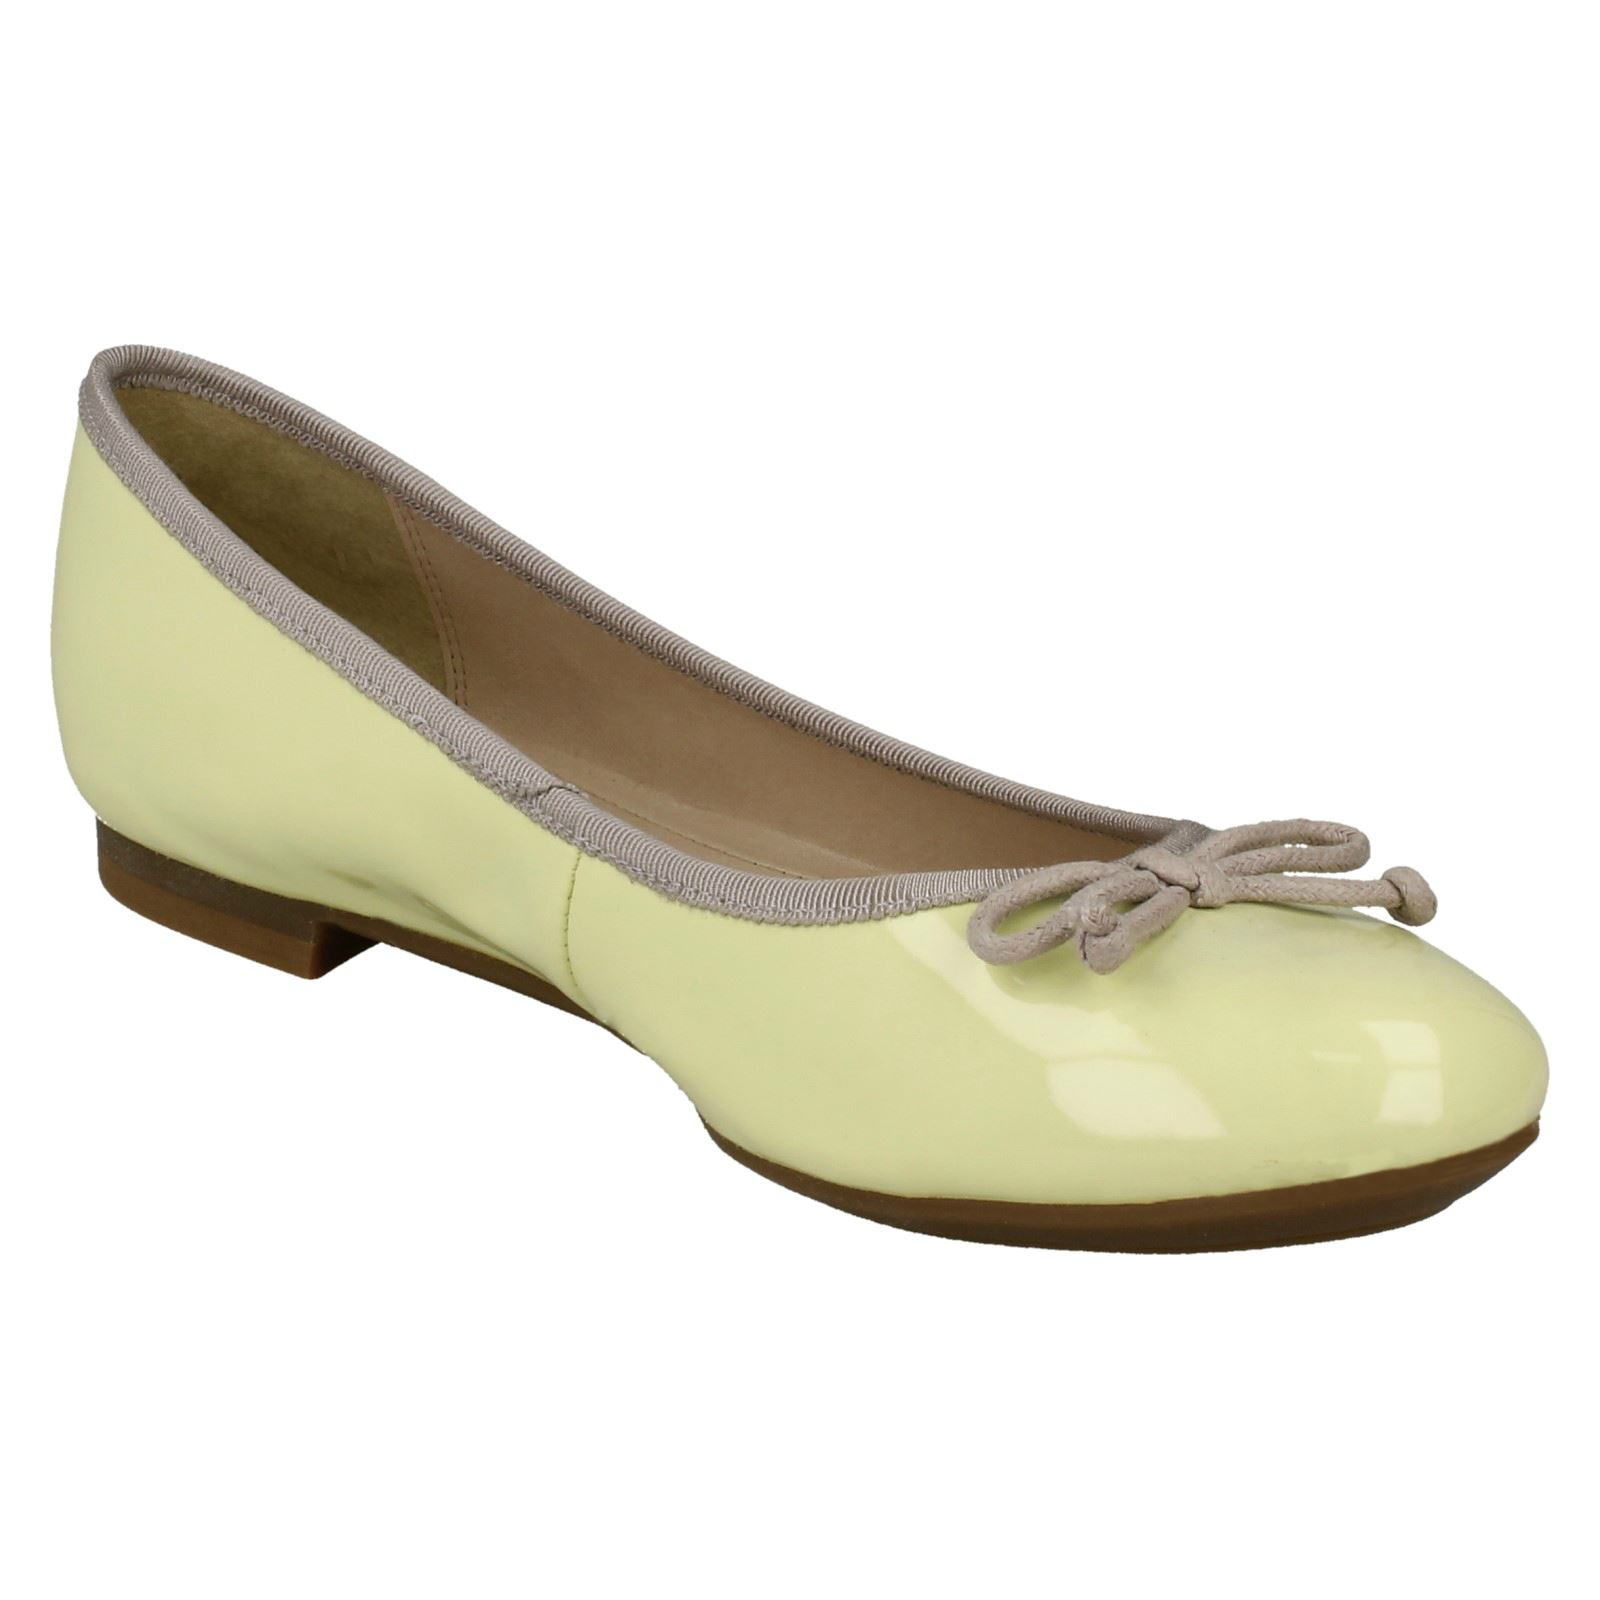 Ladies Clarks Flat Ballerina Shoes /'Carousel Ride/'